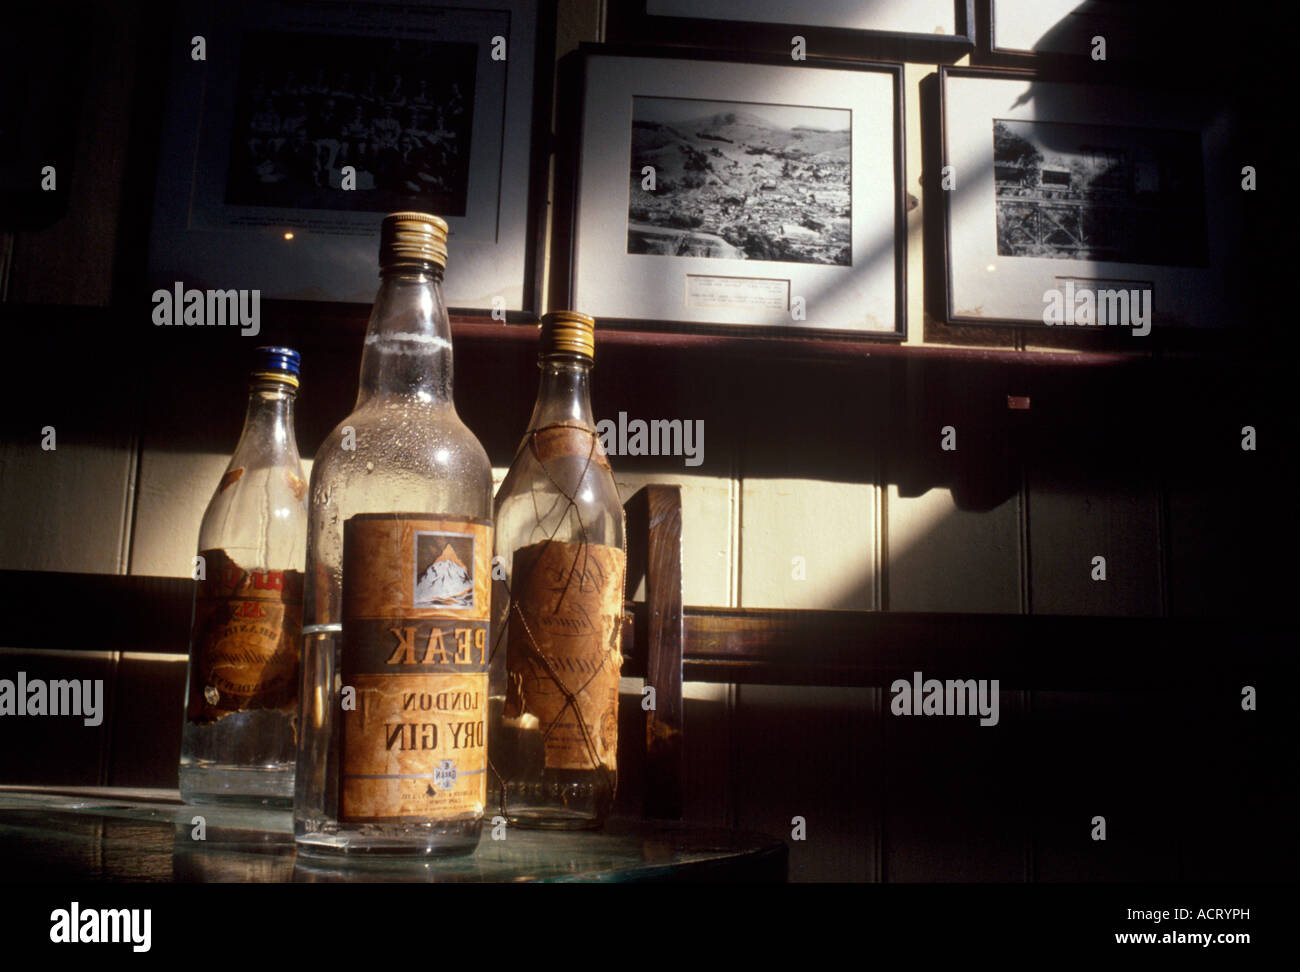 Empty bottles of alcohol stand on a bar with photographs of the gold rush era at the Royal Hotel in Pilgrims rest Stock Photo